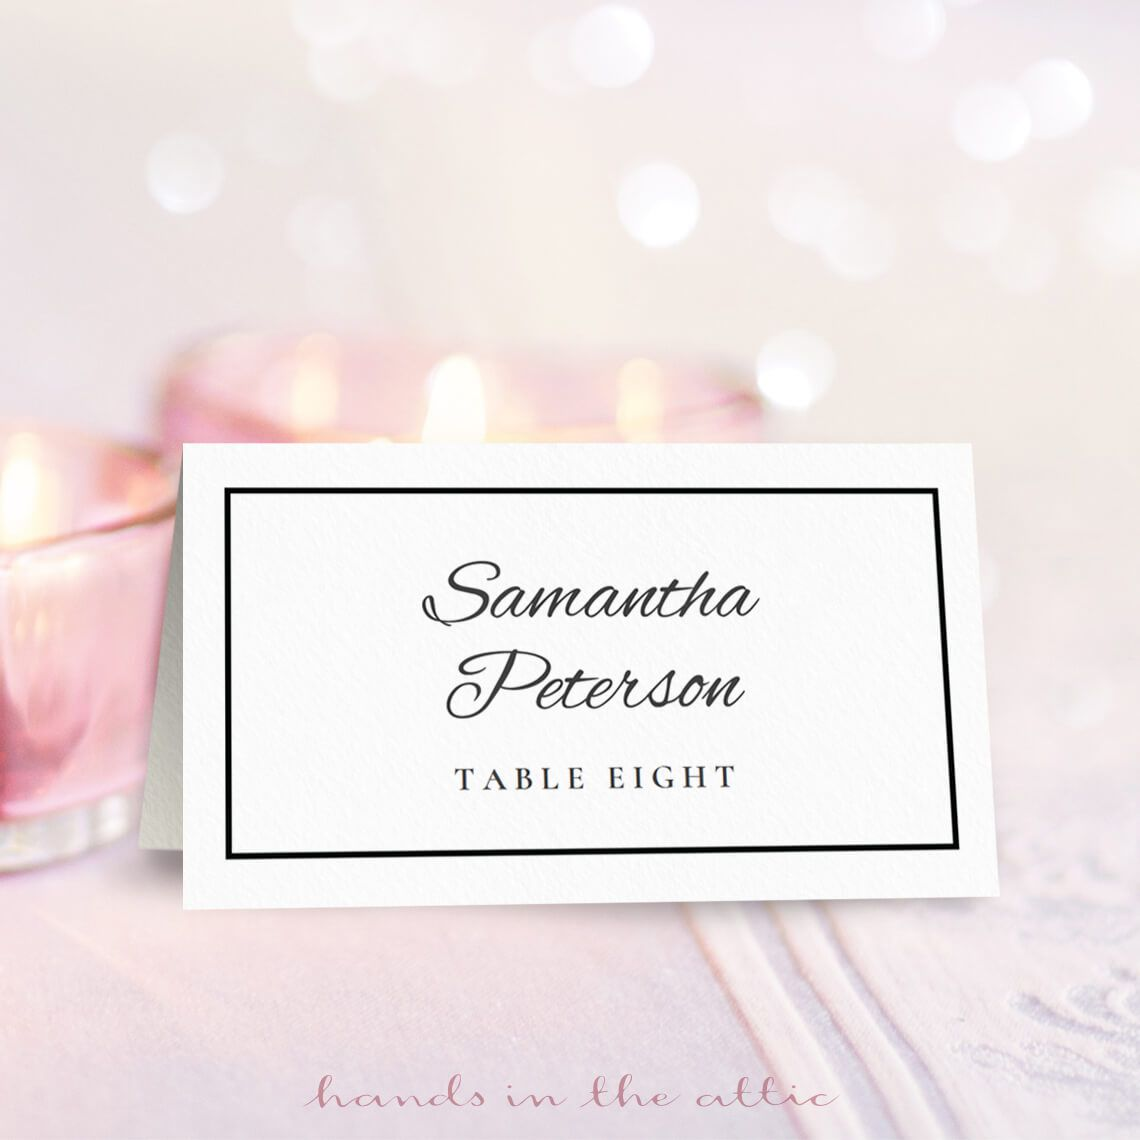 A black and white wedding place card.